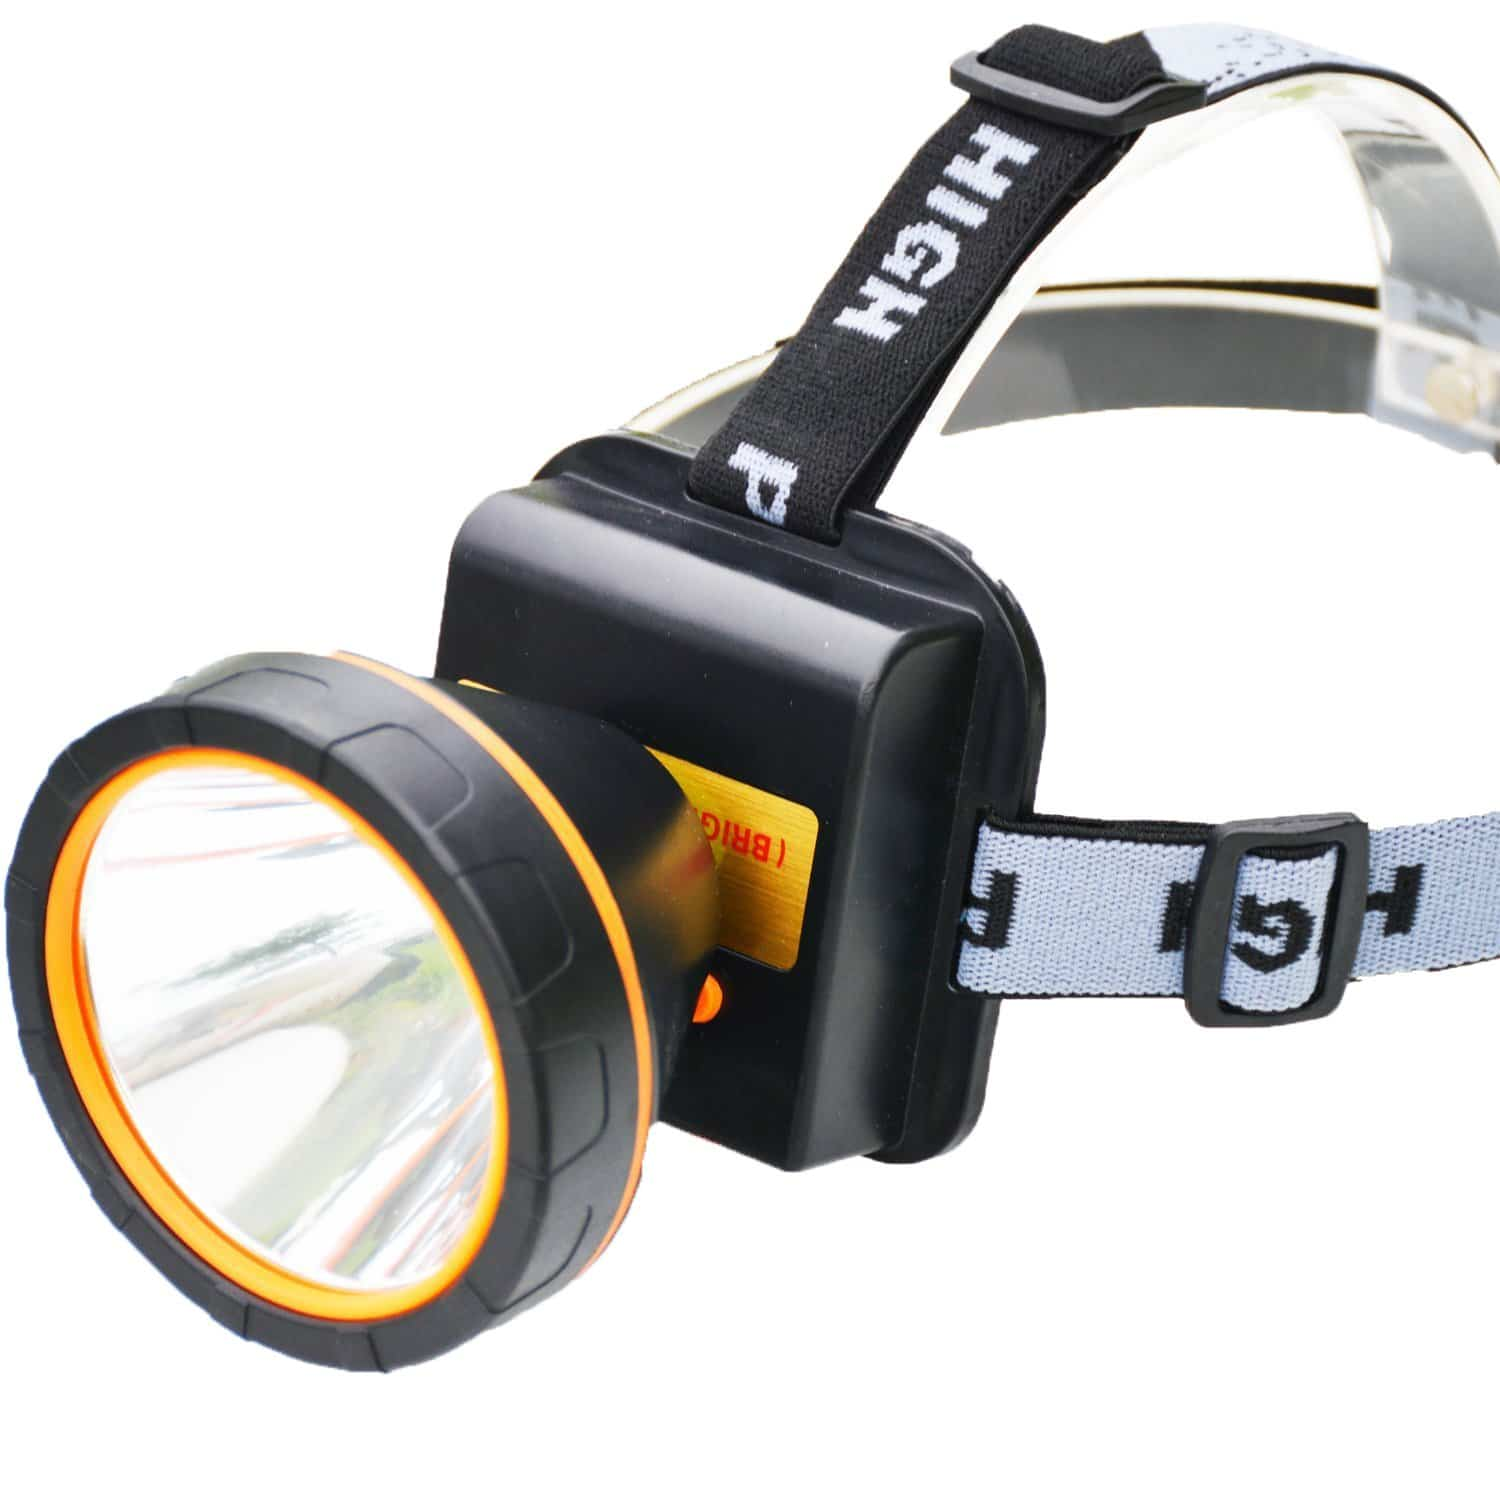 olidear LED Headlamp Torch Outdoor Rechargeable Headlight